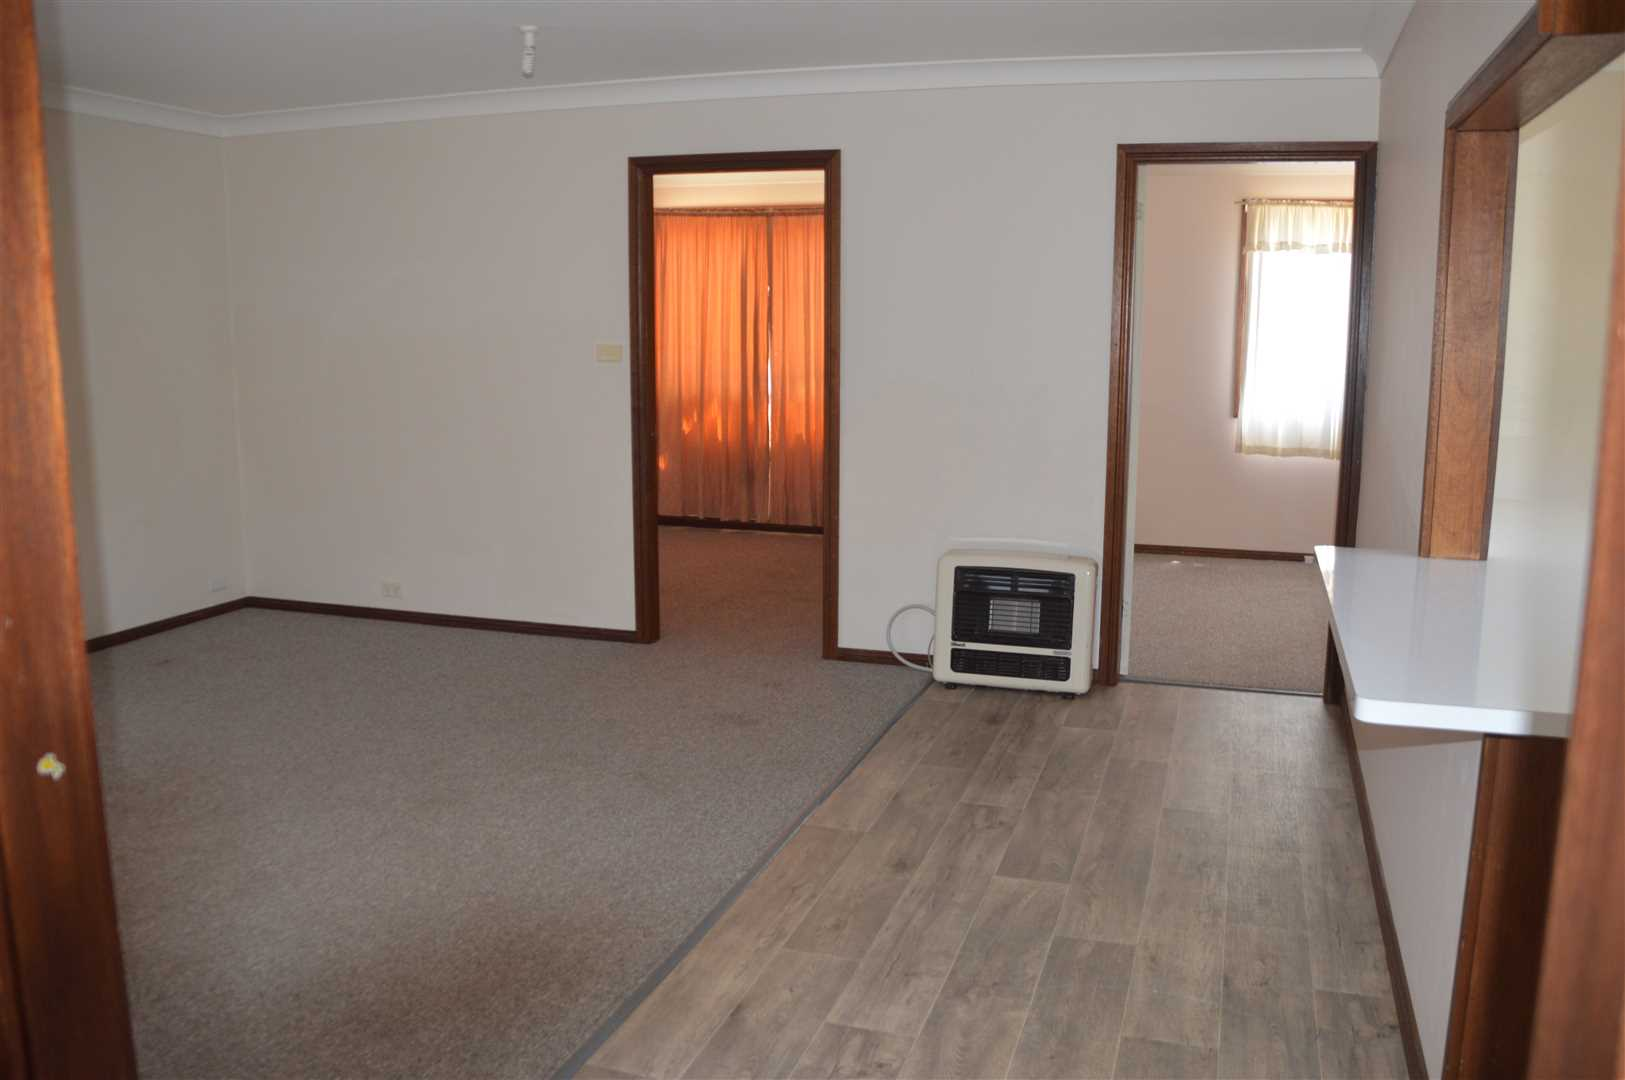 Unit 1 showing entrance to 2 bedrooms off living area